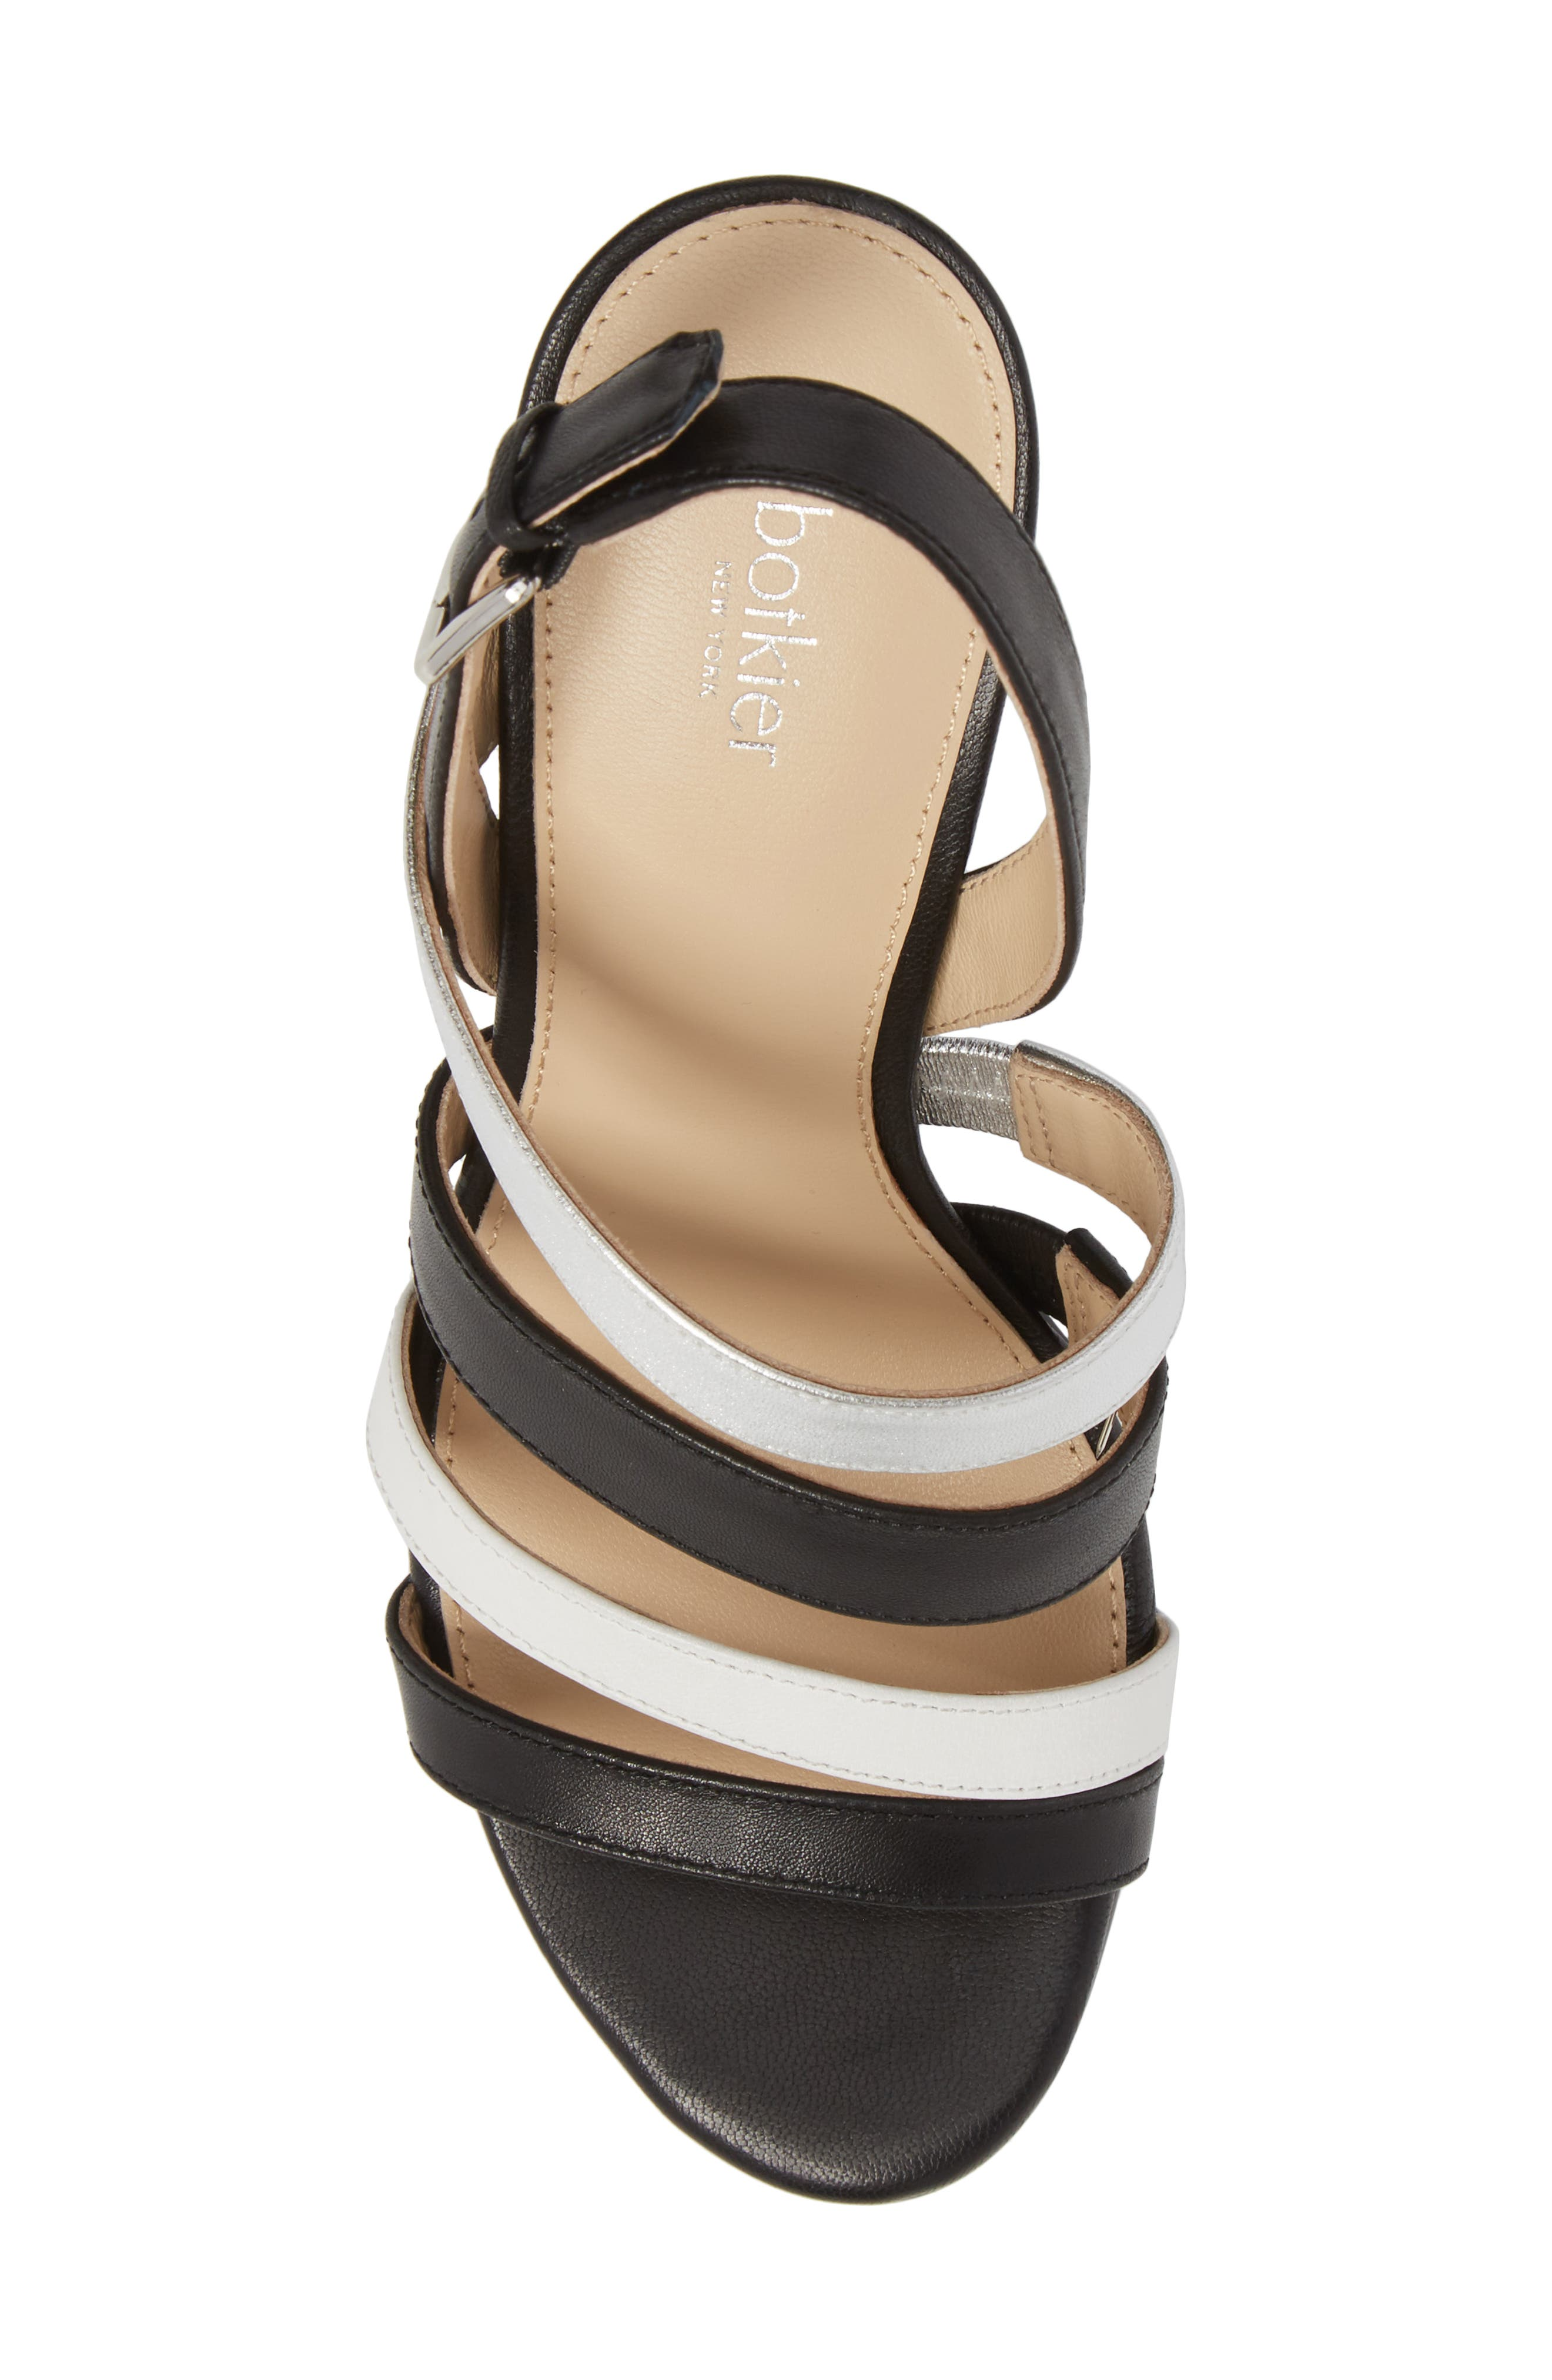 Sera Sandal,                             Alternate thumbnail 5, color,                             Black Multi Leather